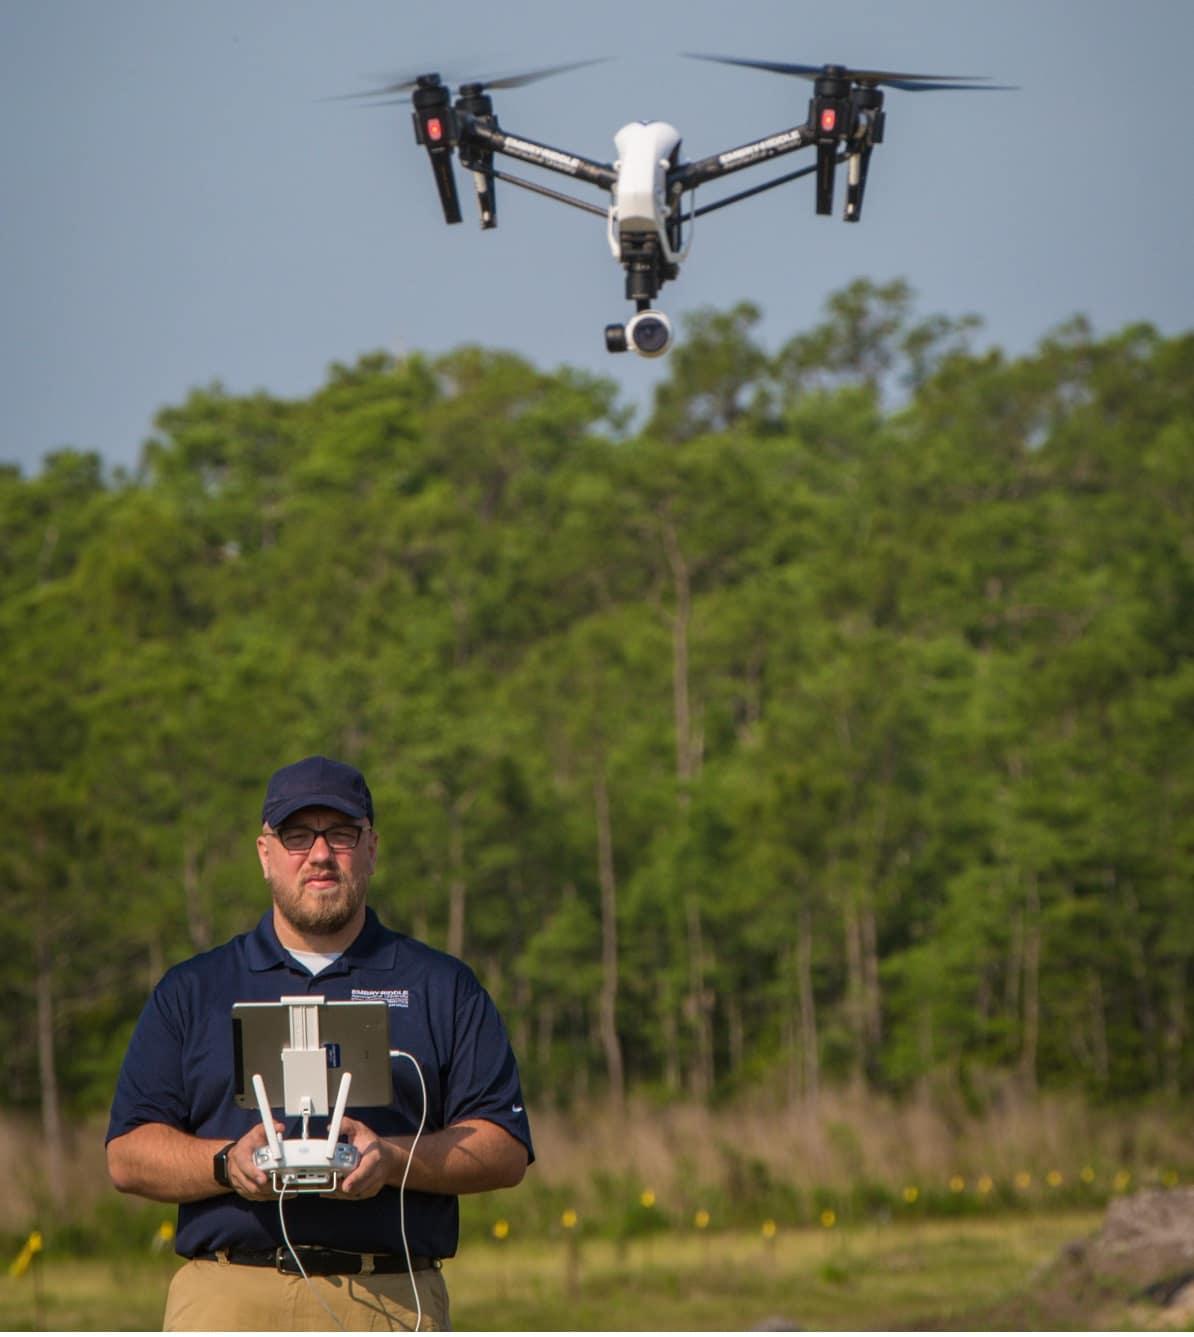 Brent Terwilliger's expertise will help define best practices for the safe, responsible operation of future unmanned aerial systems.